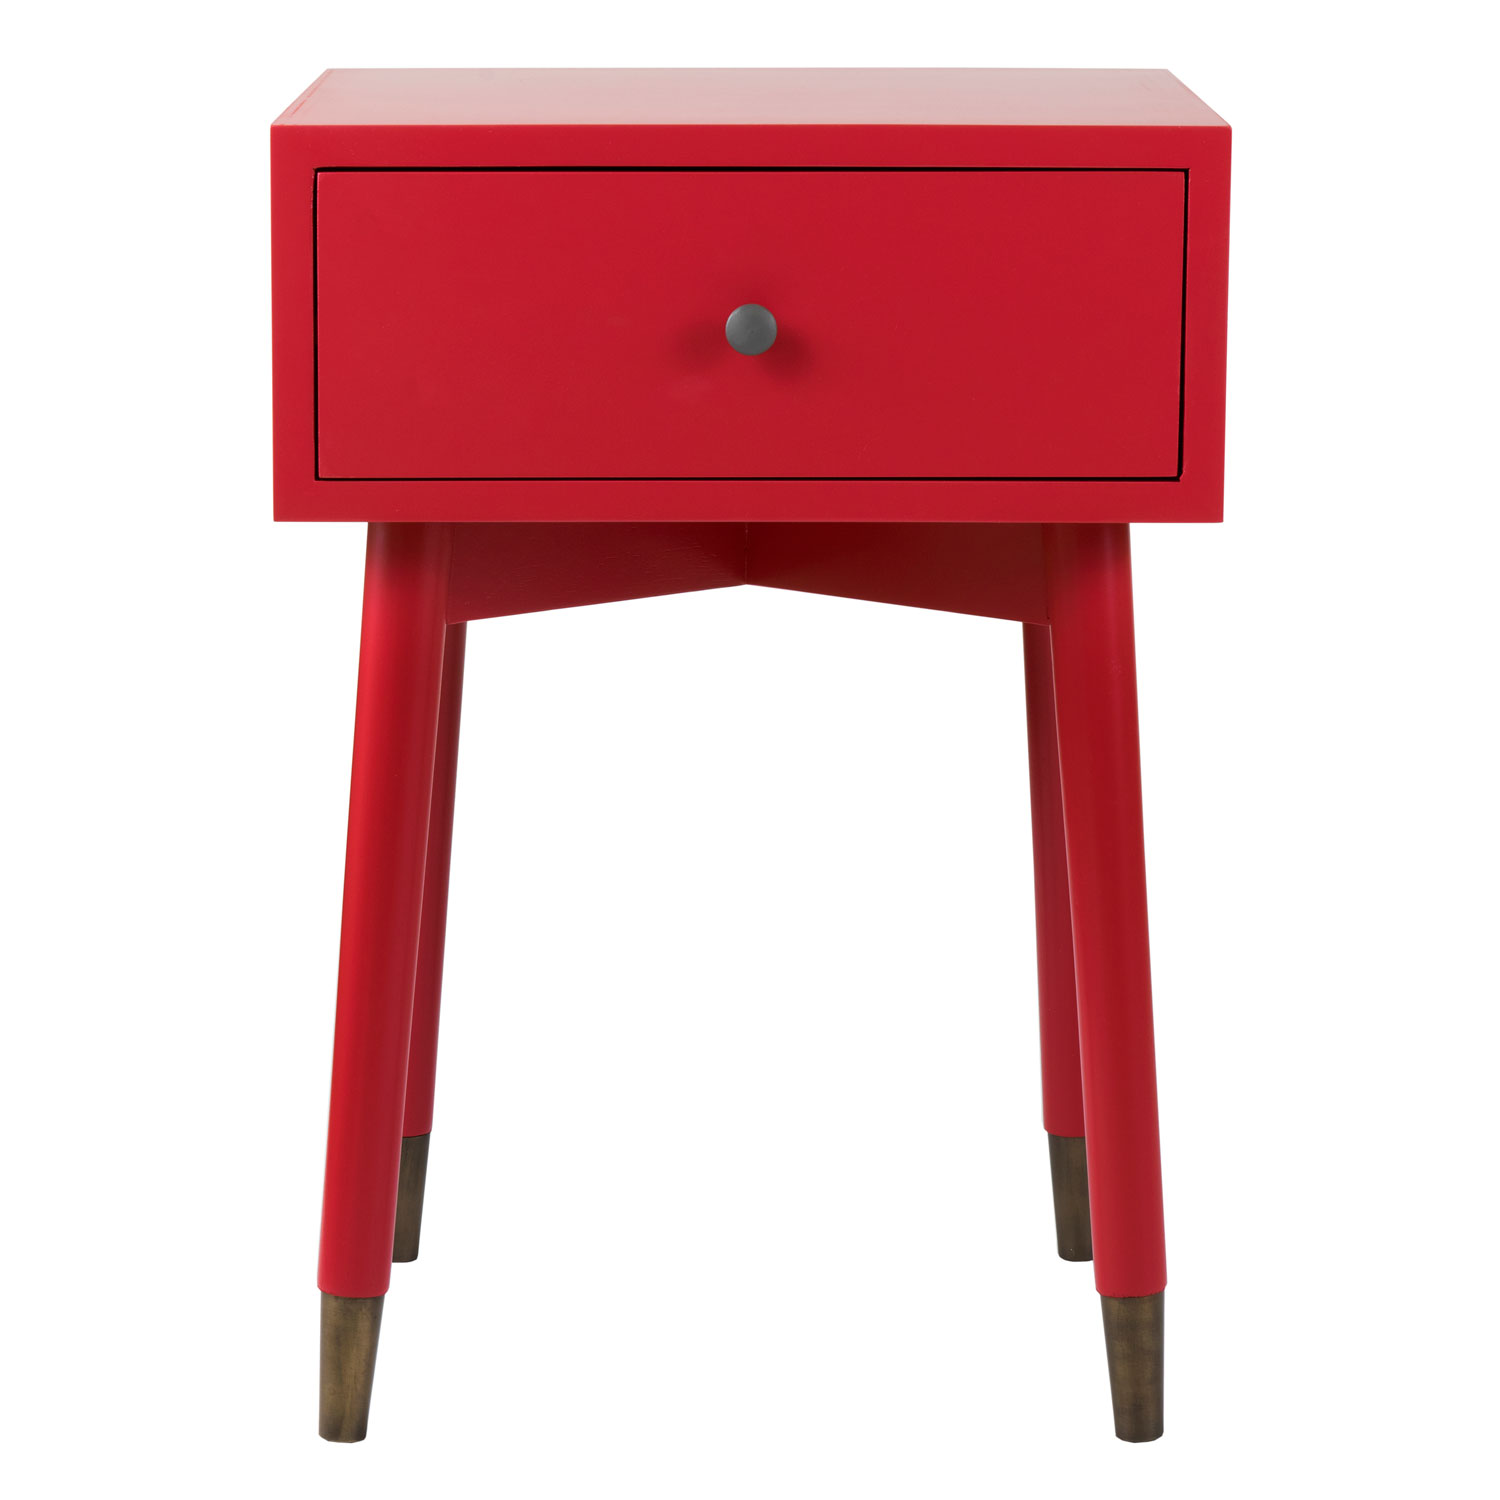 east main weeks red acacia wood square accent table hover zoom drawer chest half round ikea oval end grill griddle replacement furniture legs gray farmhouse marble desk vinyl